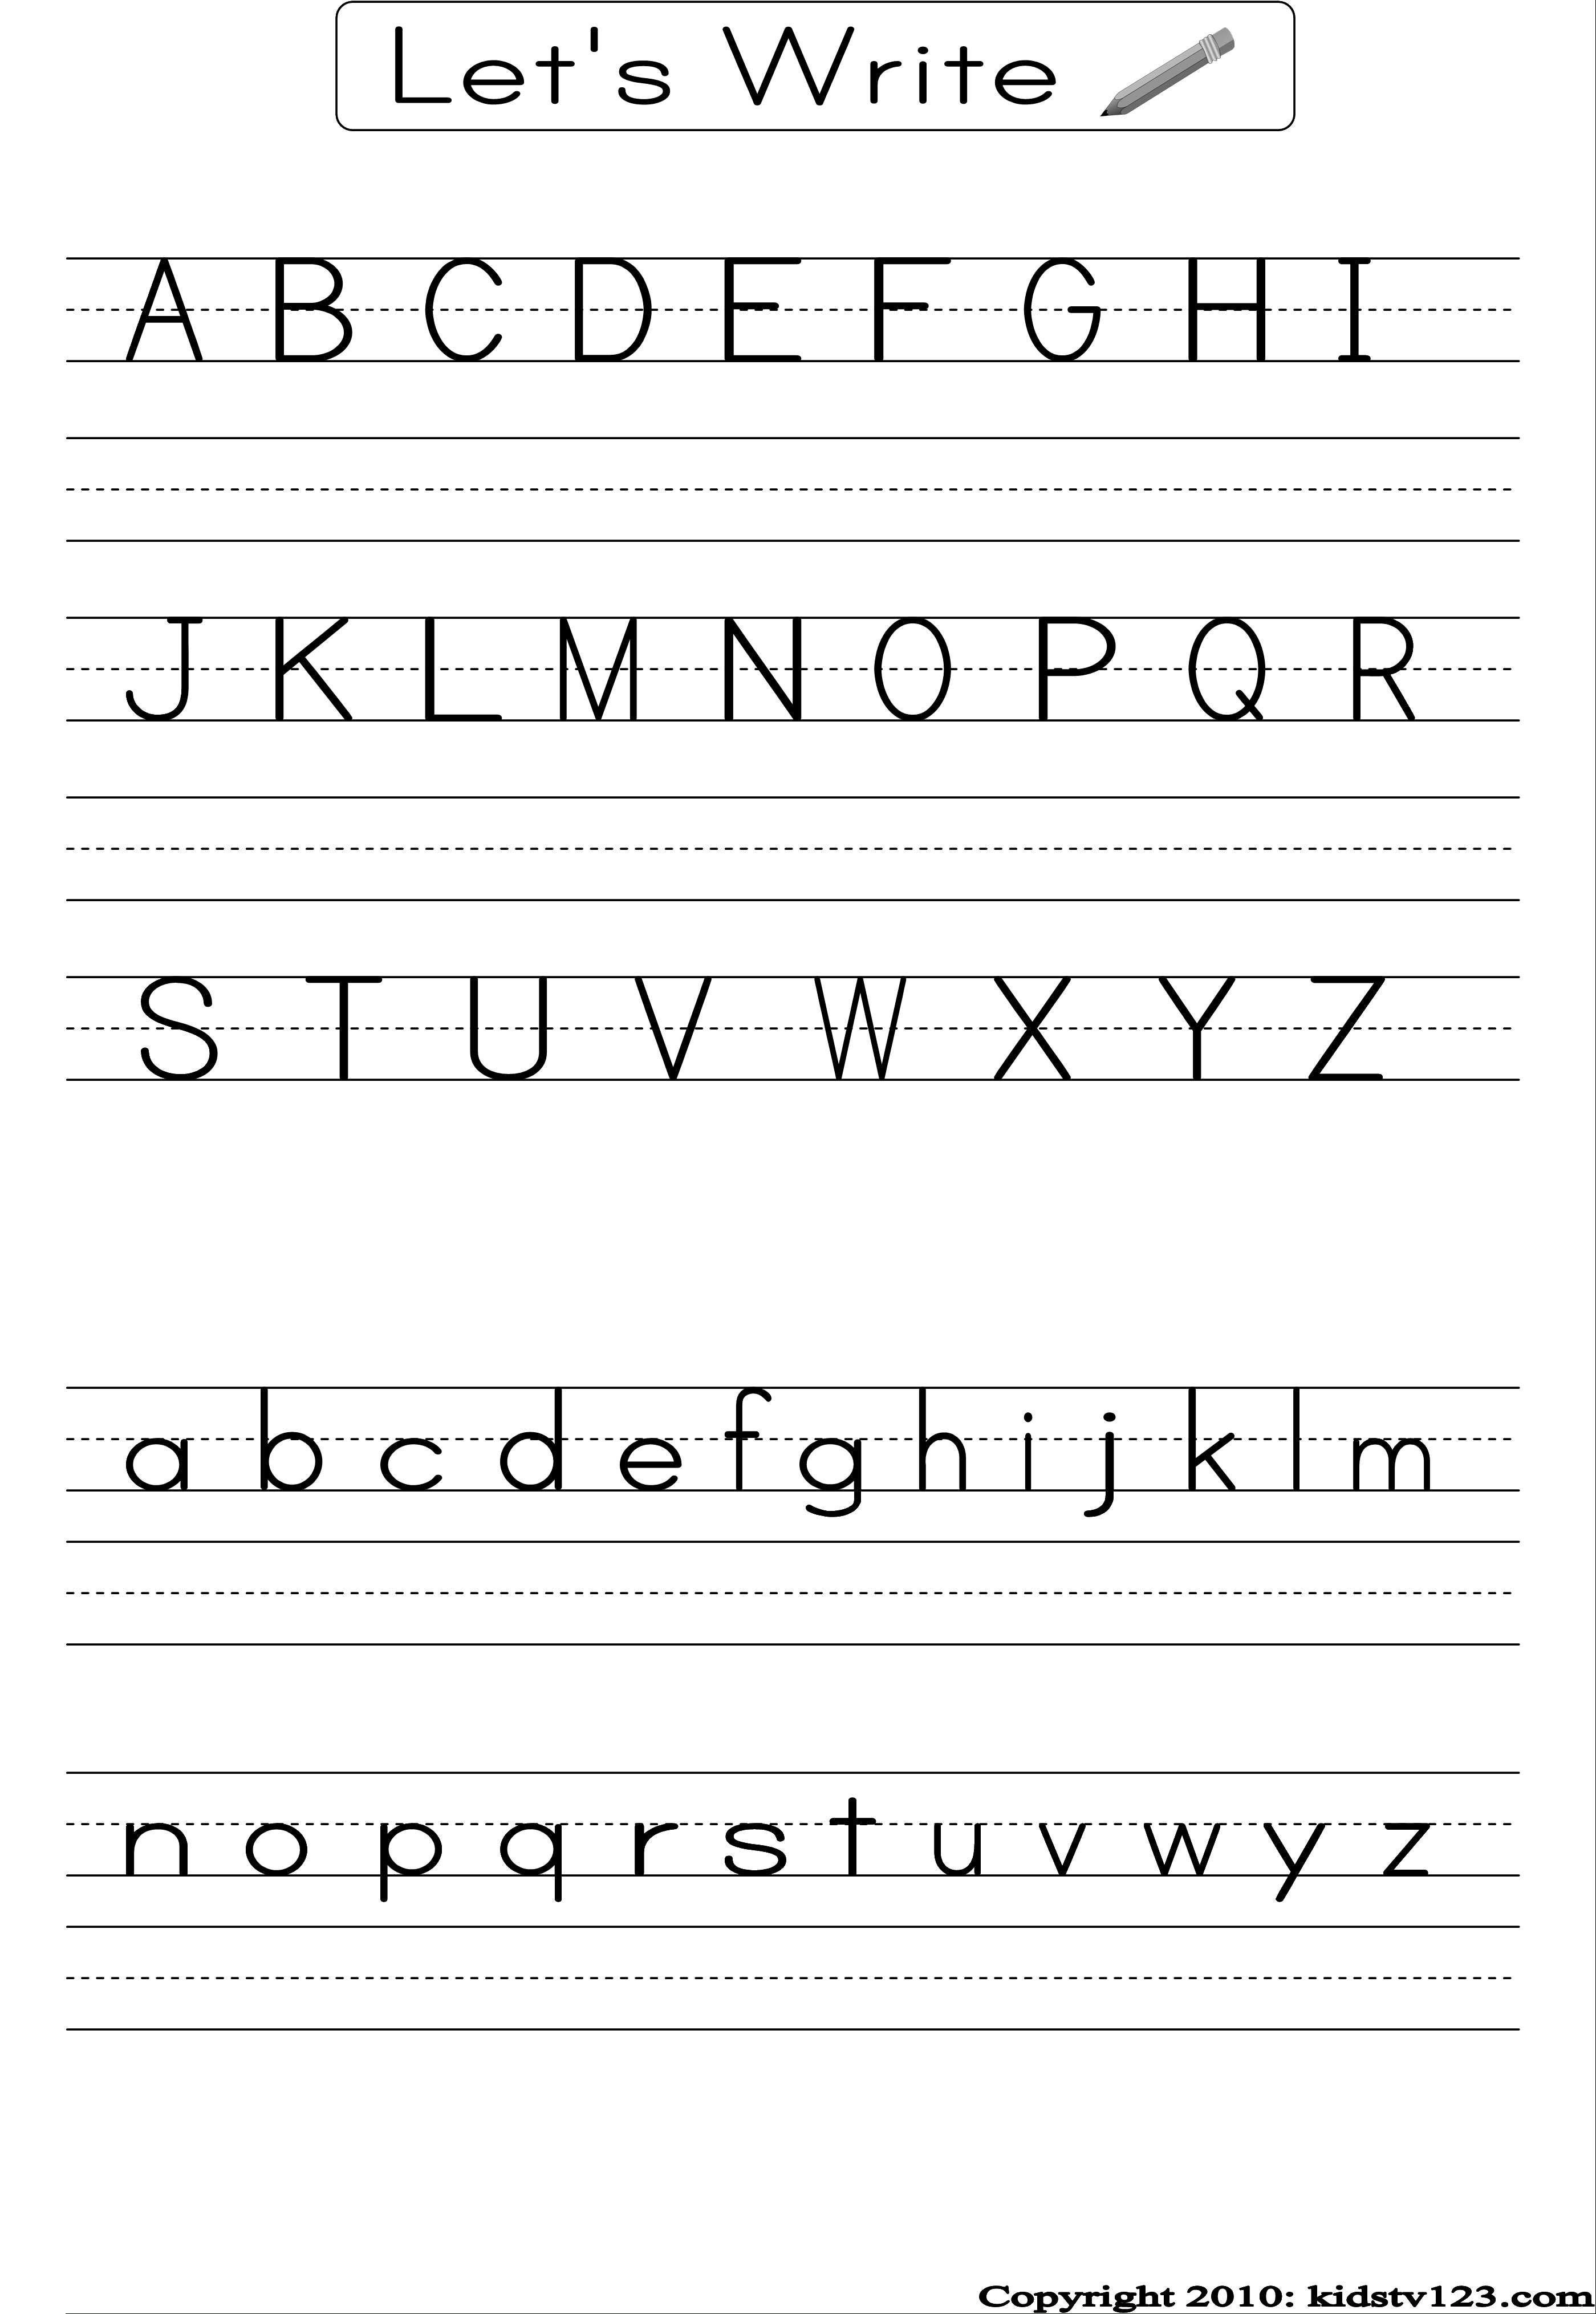 Alphabet Writing Practice Sheet | Edu-Fun | Alphabet Worksheets | Free Printable Writing Worksheets For Kindergarten